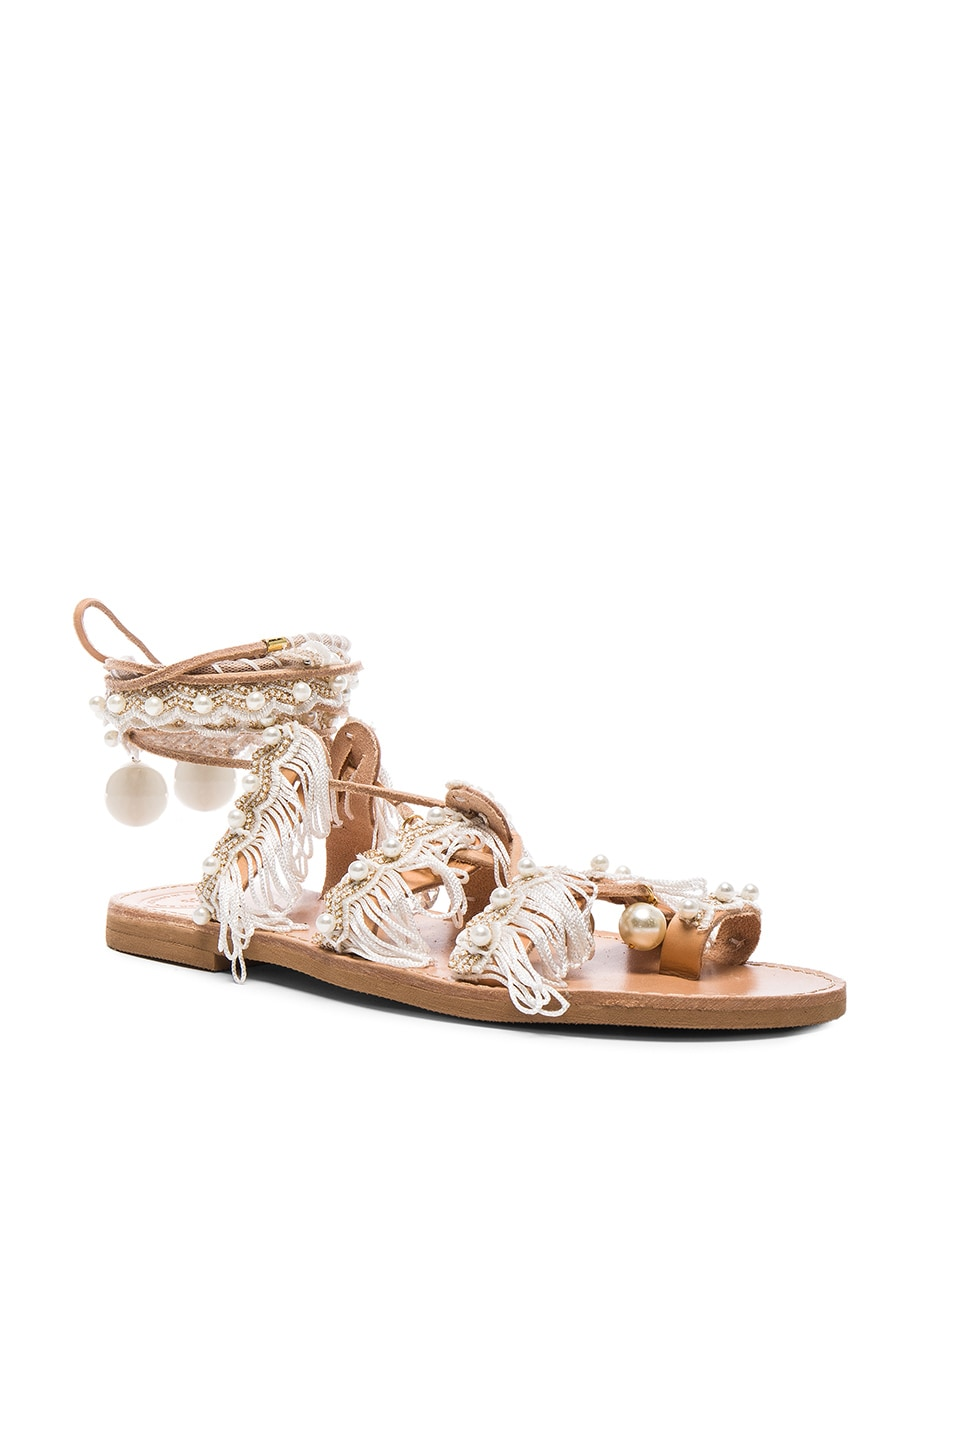 Image 3 of Elina Linardaki Leather Ever After Sandals in White